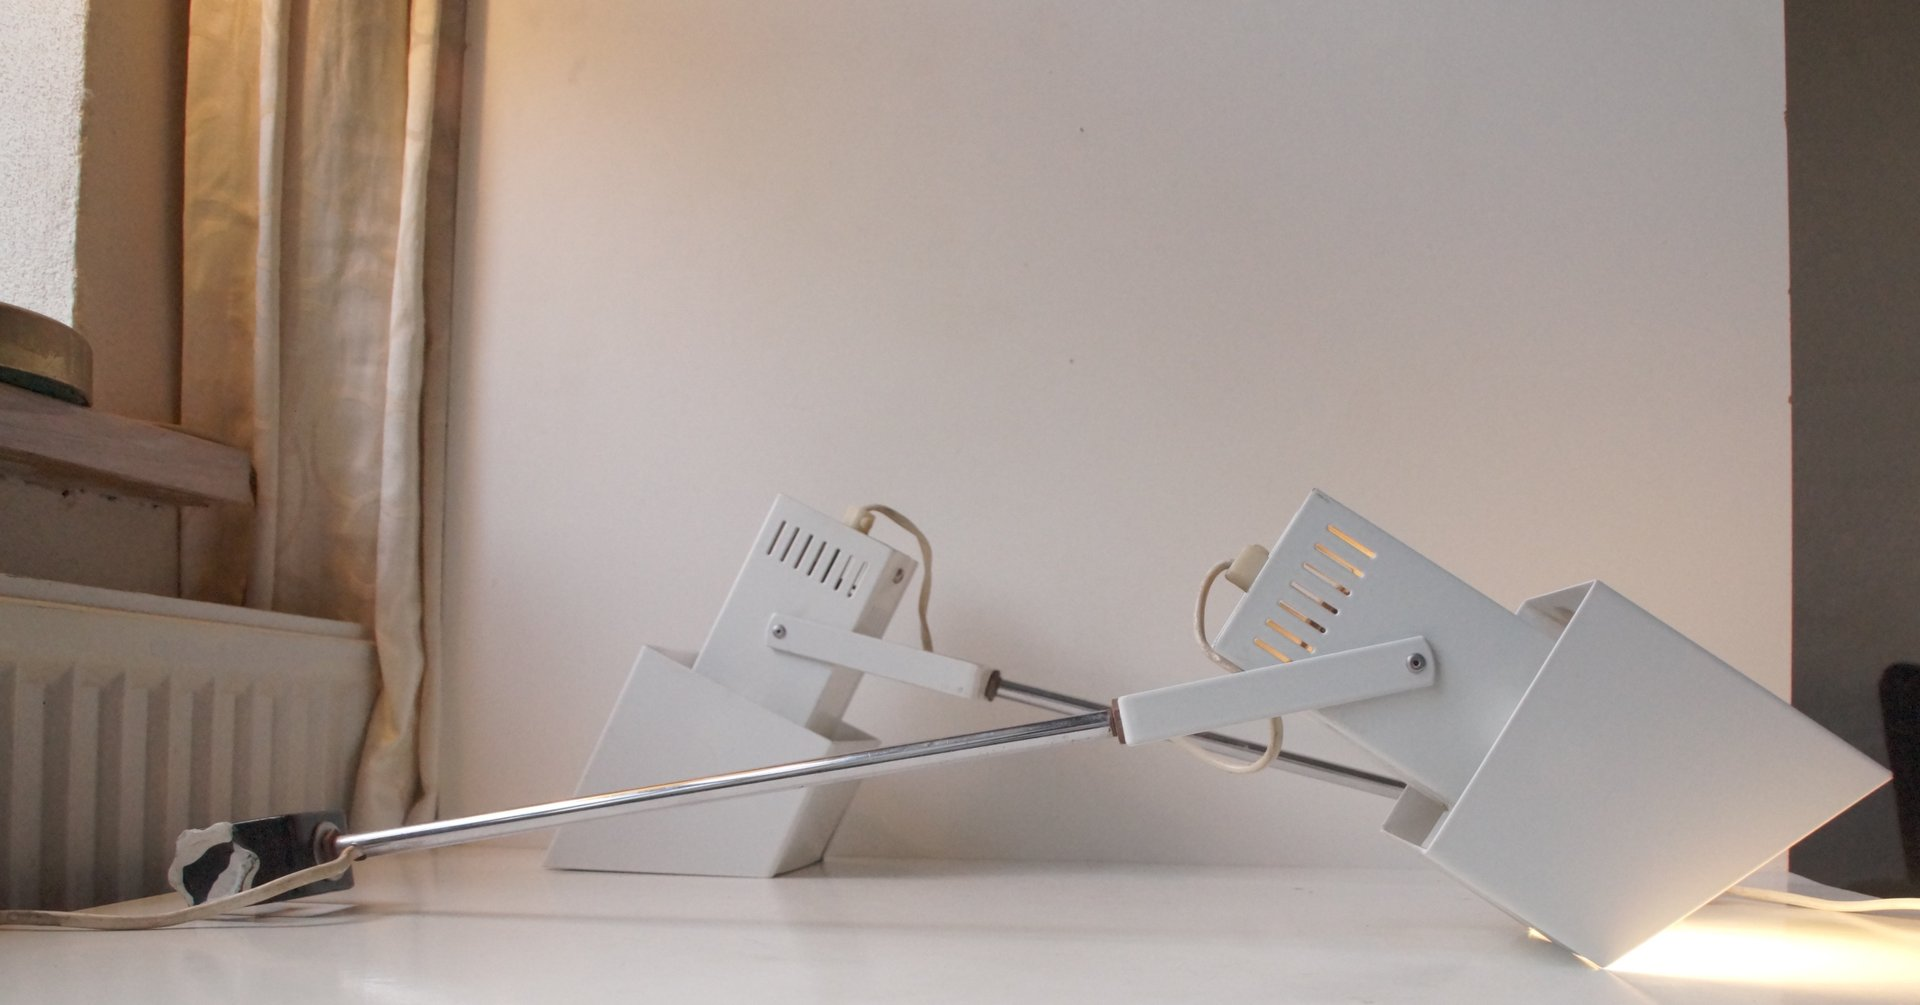 Danish Modernist Adjustable White Wall Lamps, 1970, Set of 2 for sale at Pamono